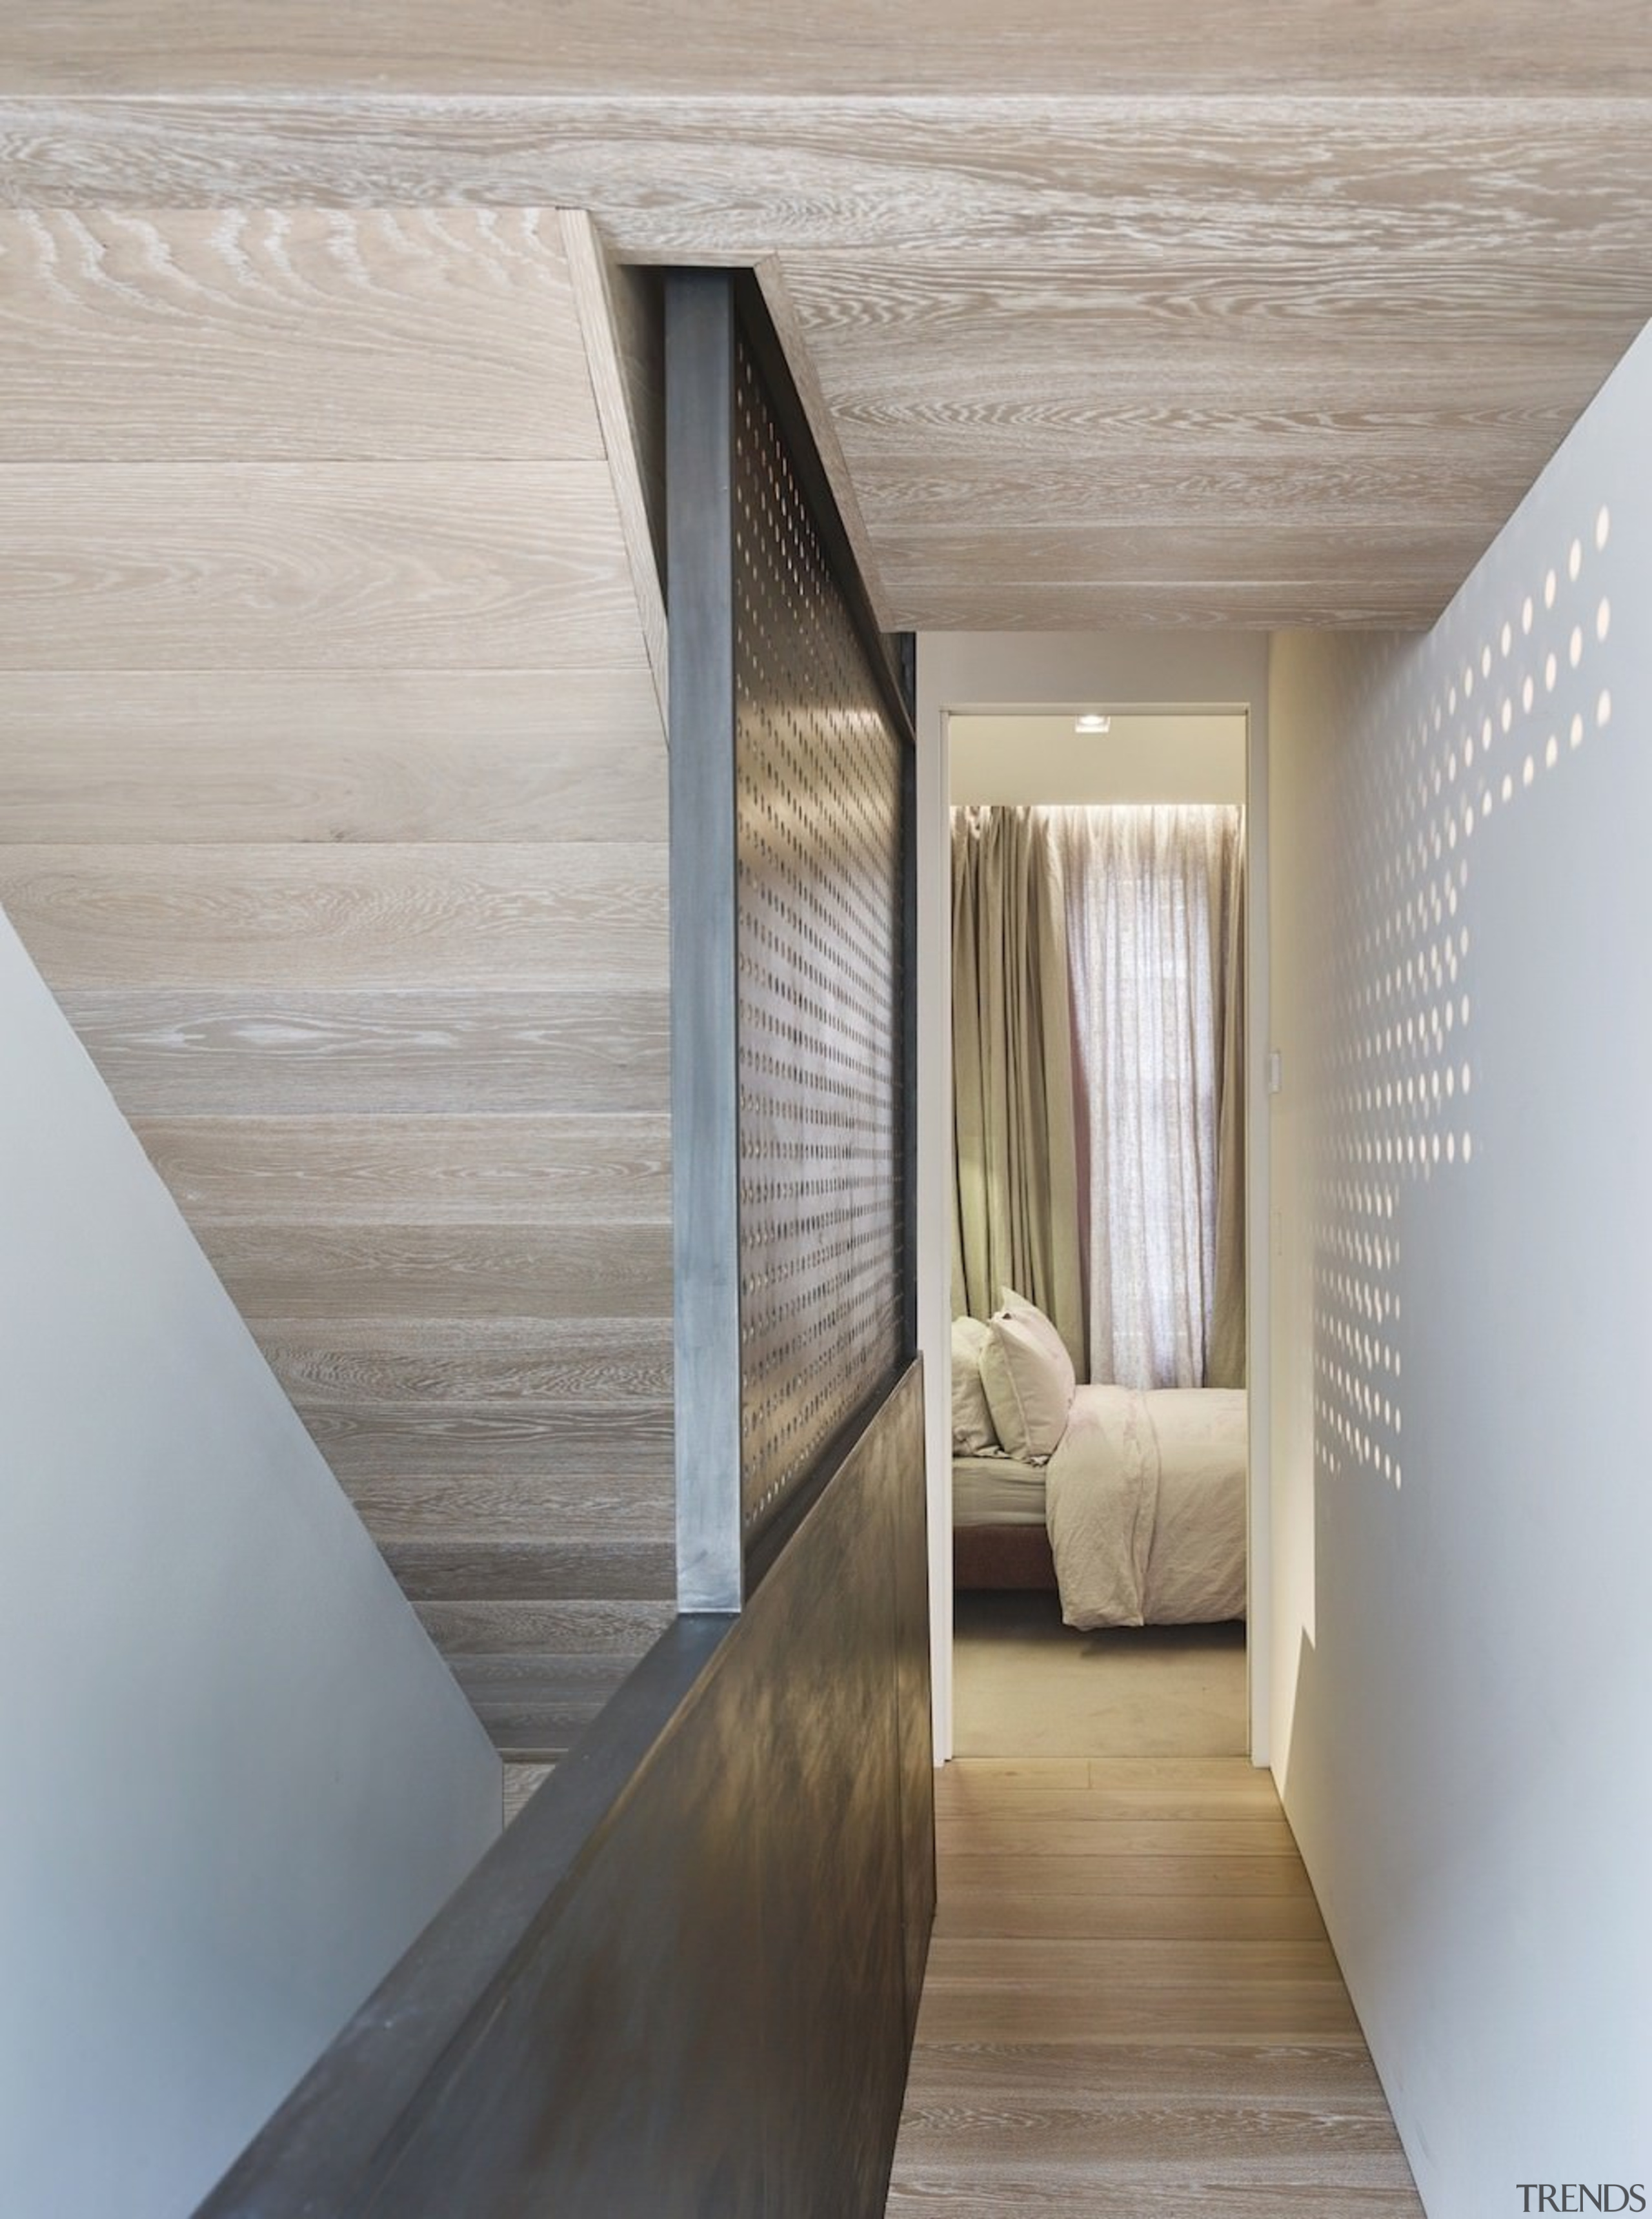 Andy Martin Architecture – Renovation in London - architecture, ceiling, daylighting, floor, flooring, house, interior design, wood, wood flooring, gray